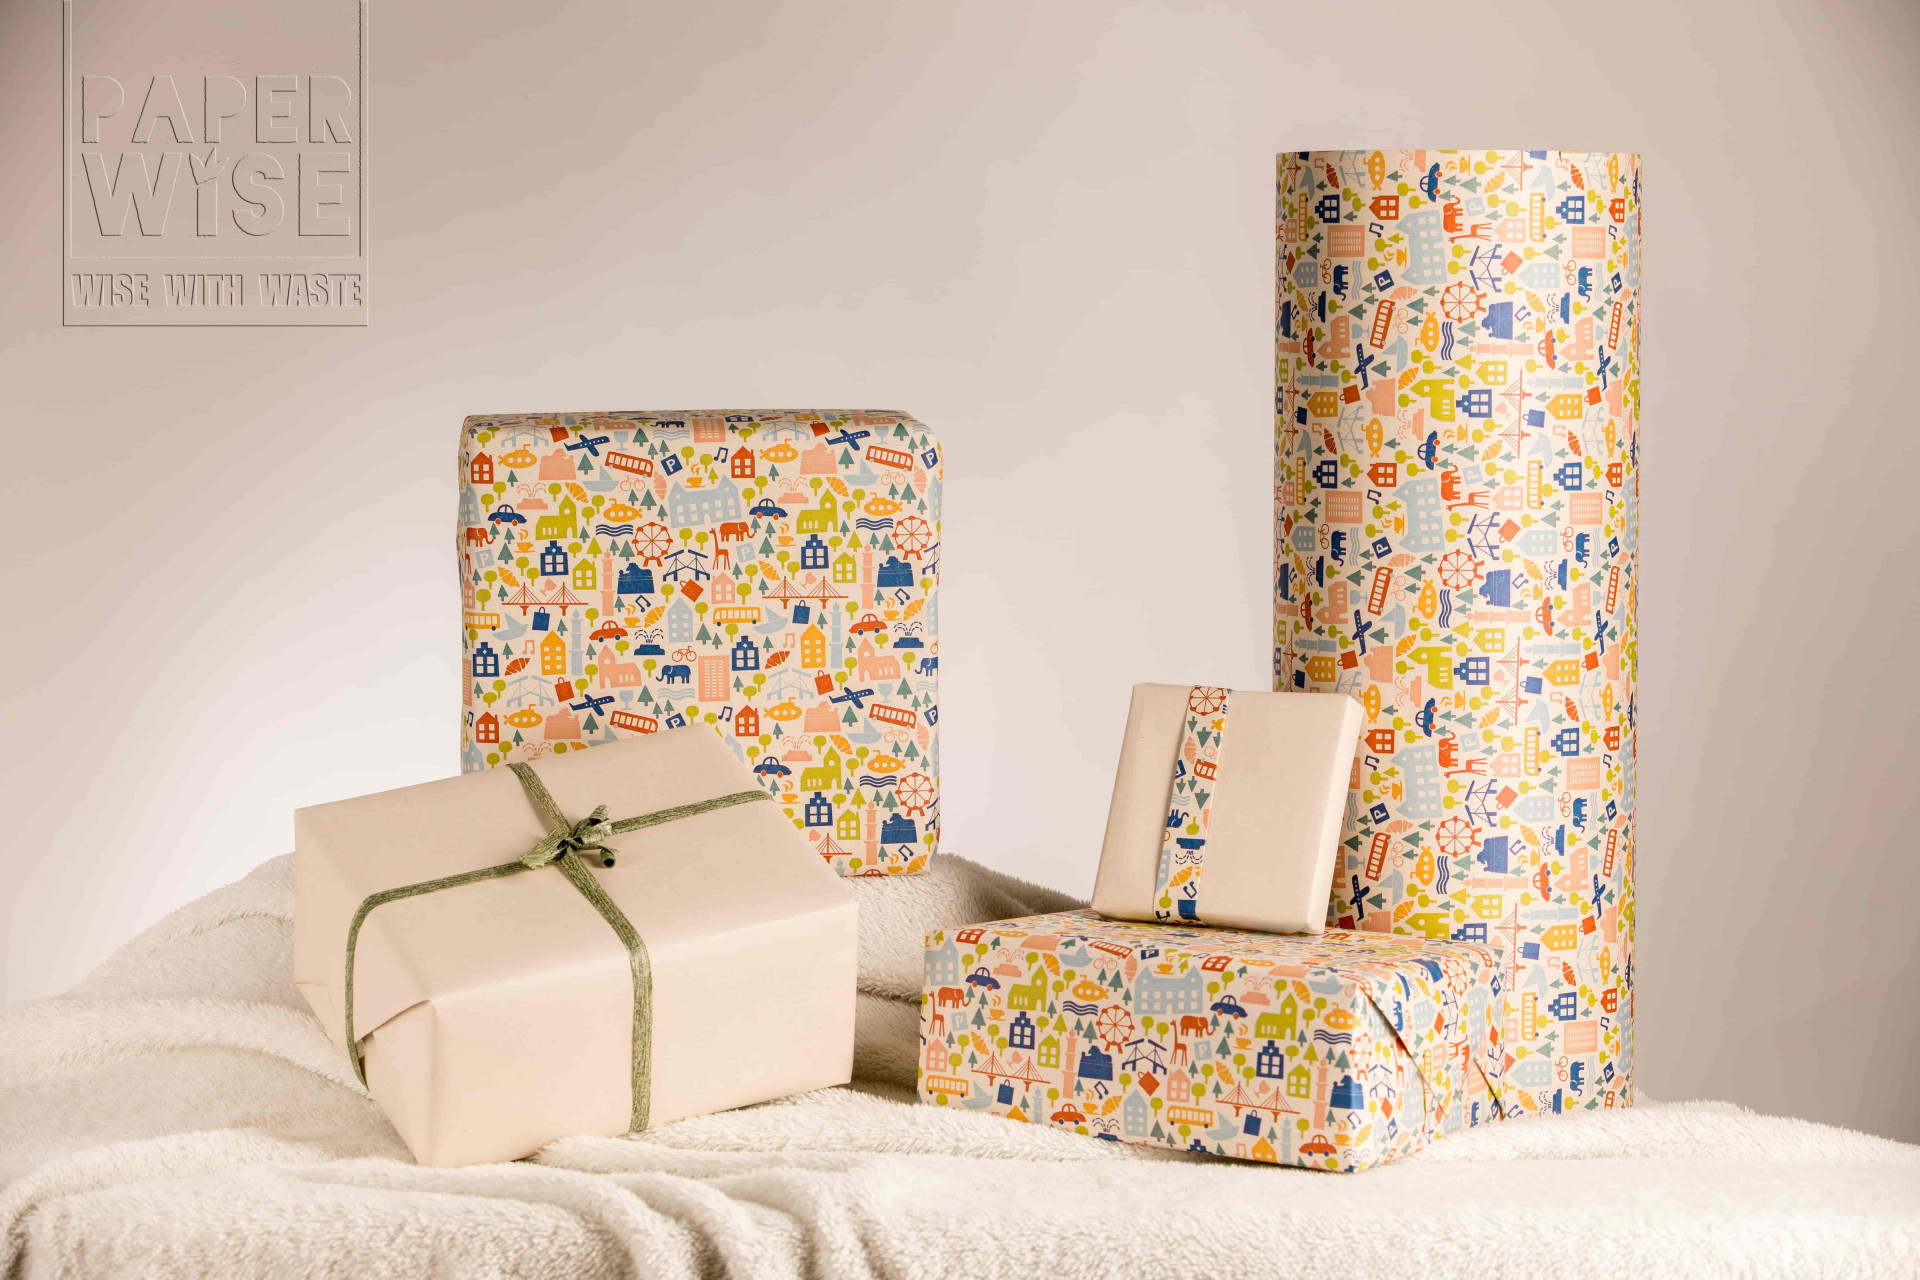 Paperwise eco friendly sustainable packaging gift wrapping